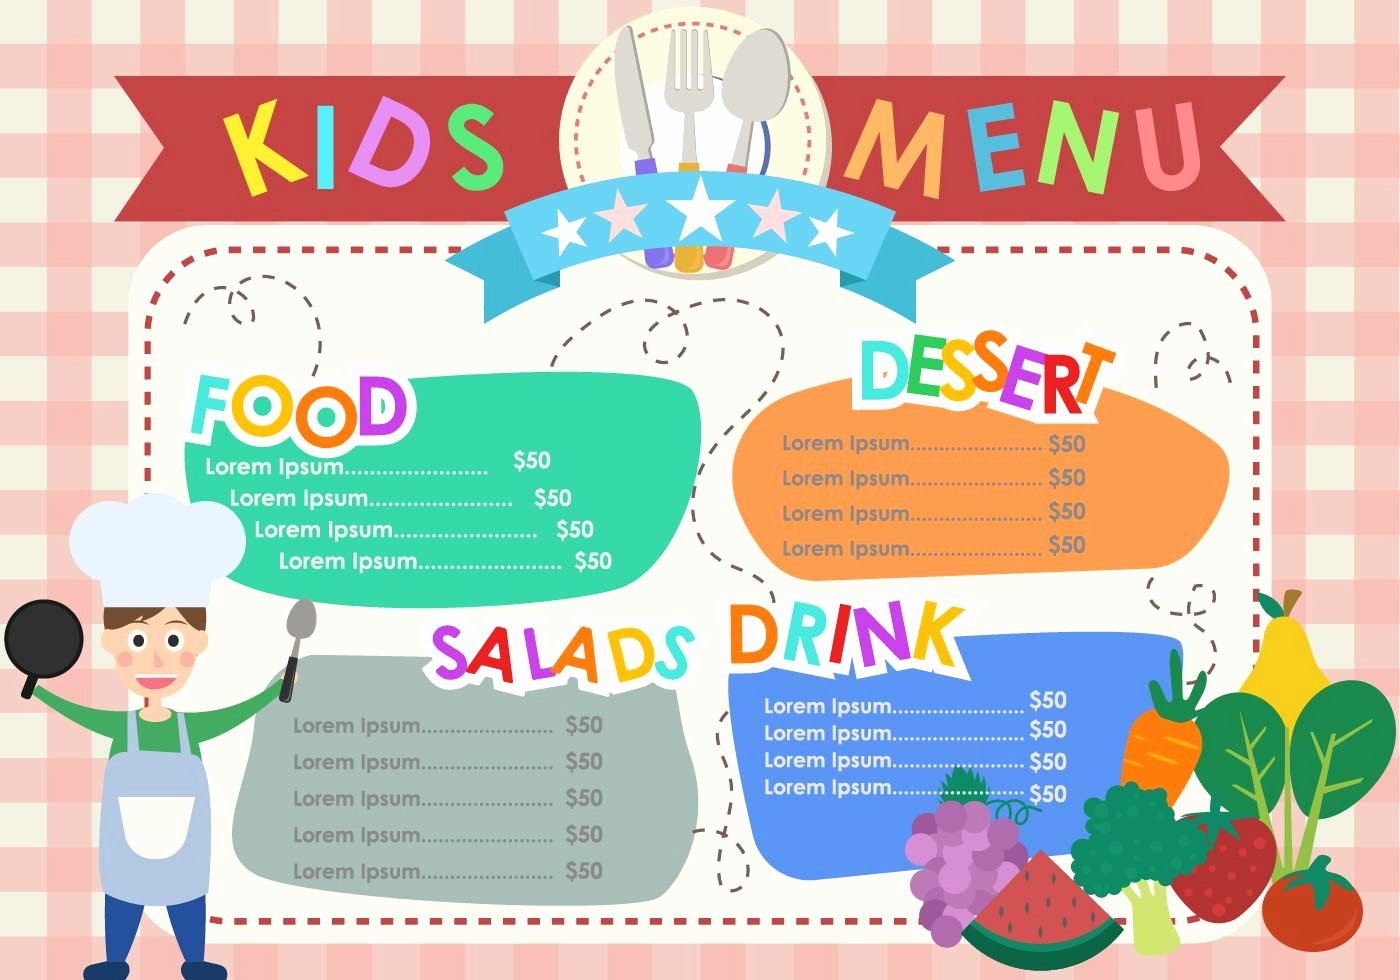 Free Kids Menu Template New Kids Menu Templates Download Free Vector Art Stock